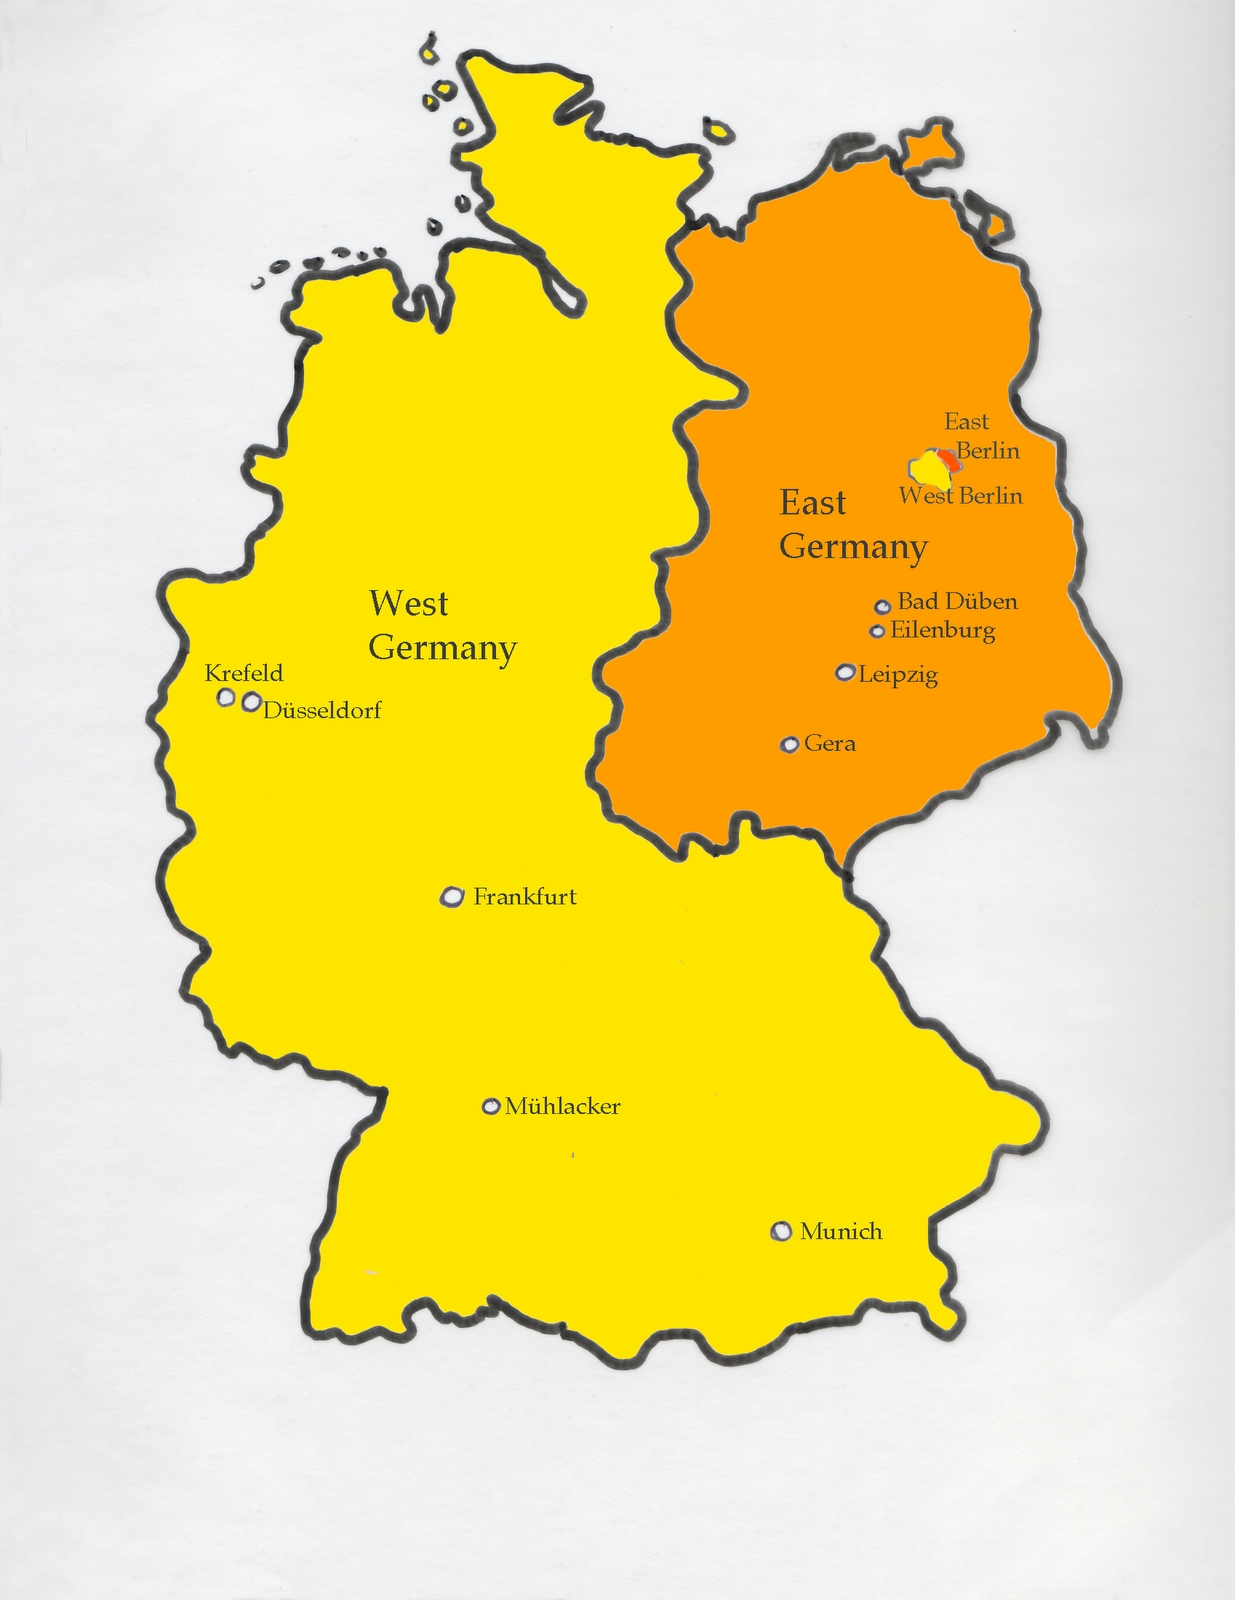 Dreaming In German: Map Of Divided Germany within Divided Germany Map